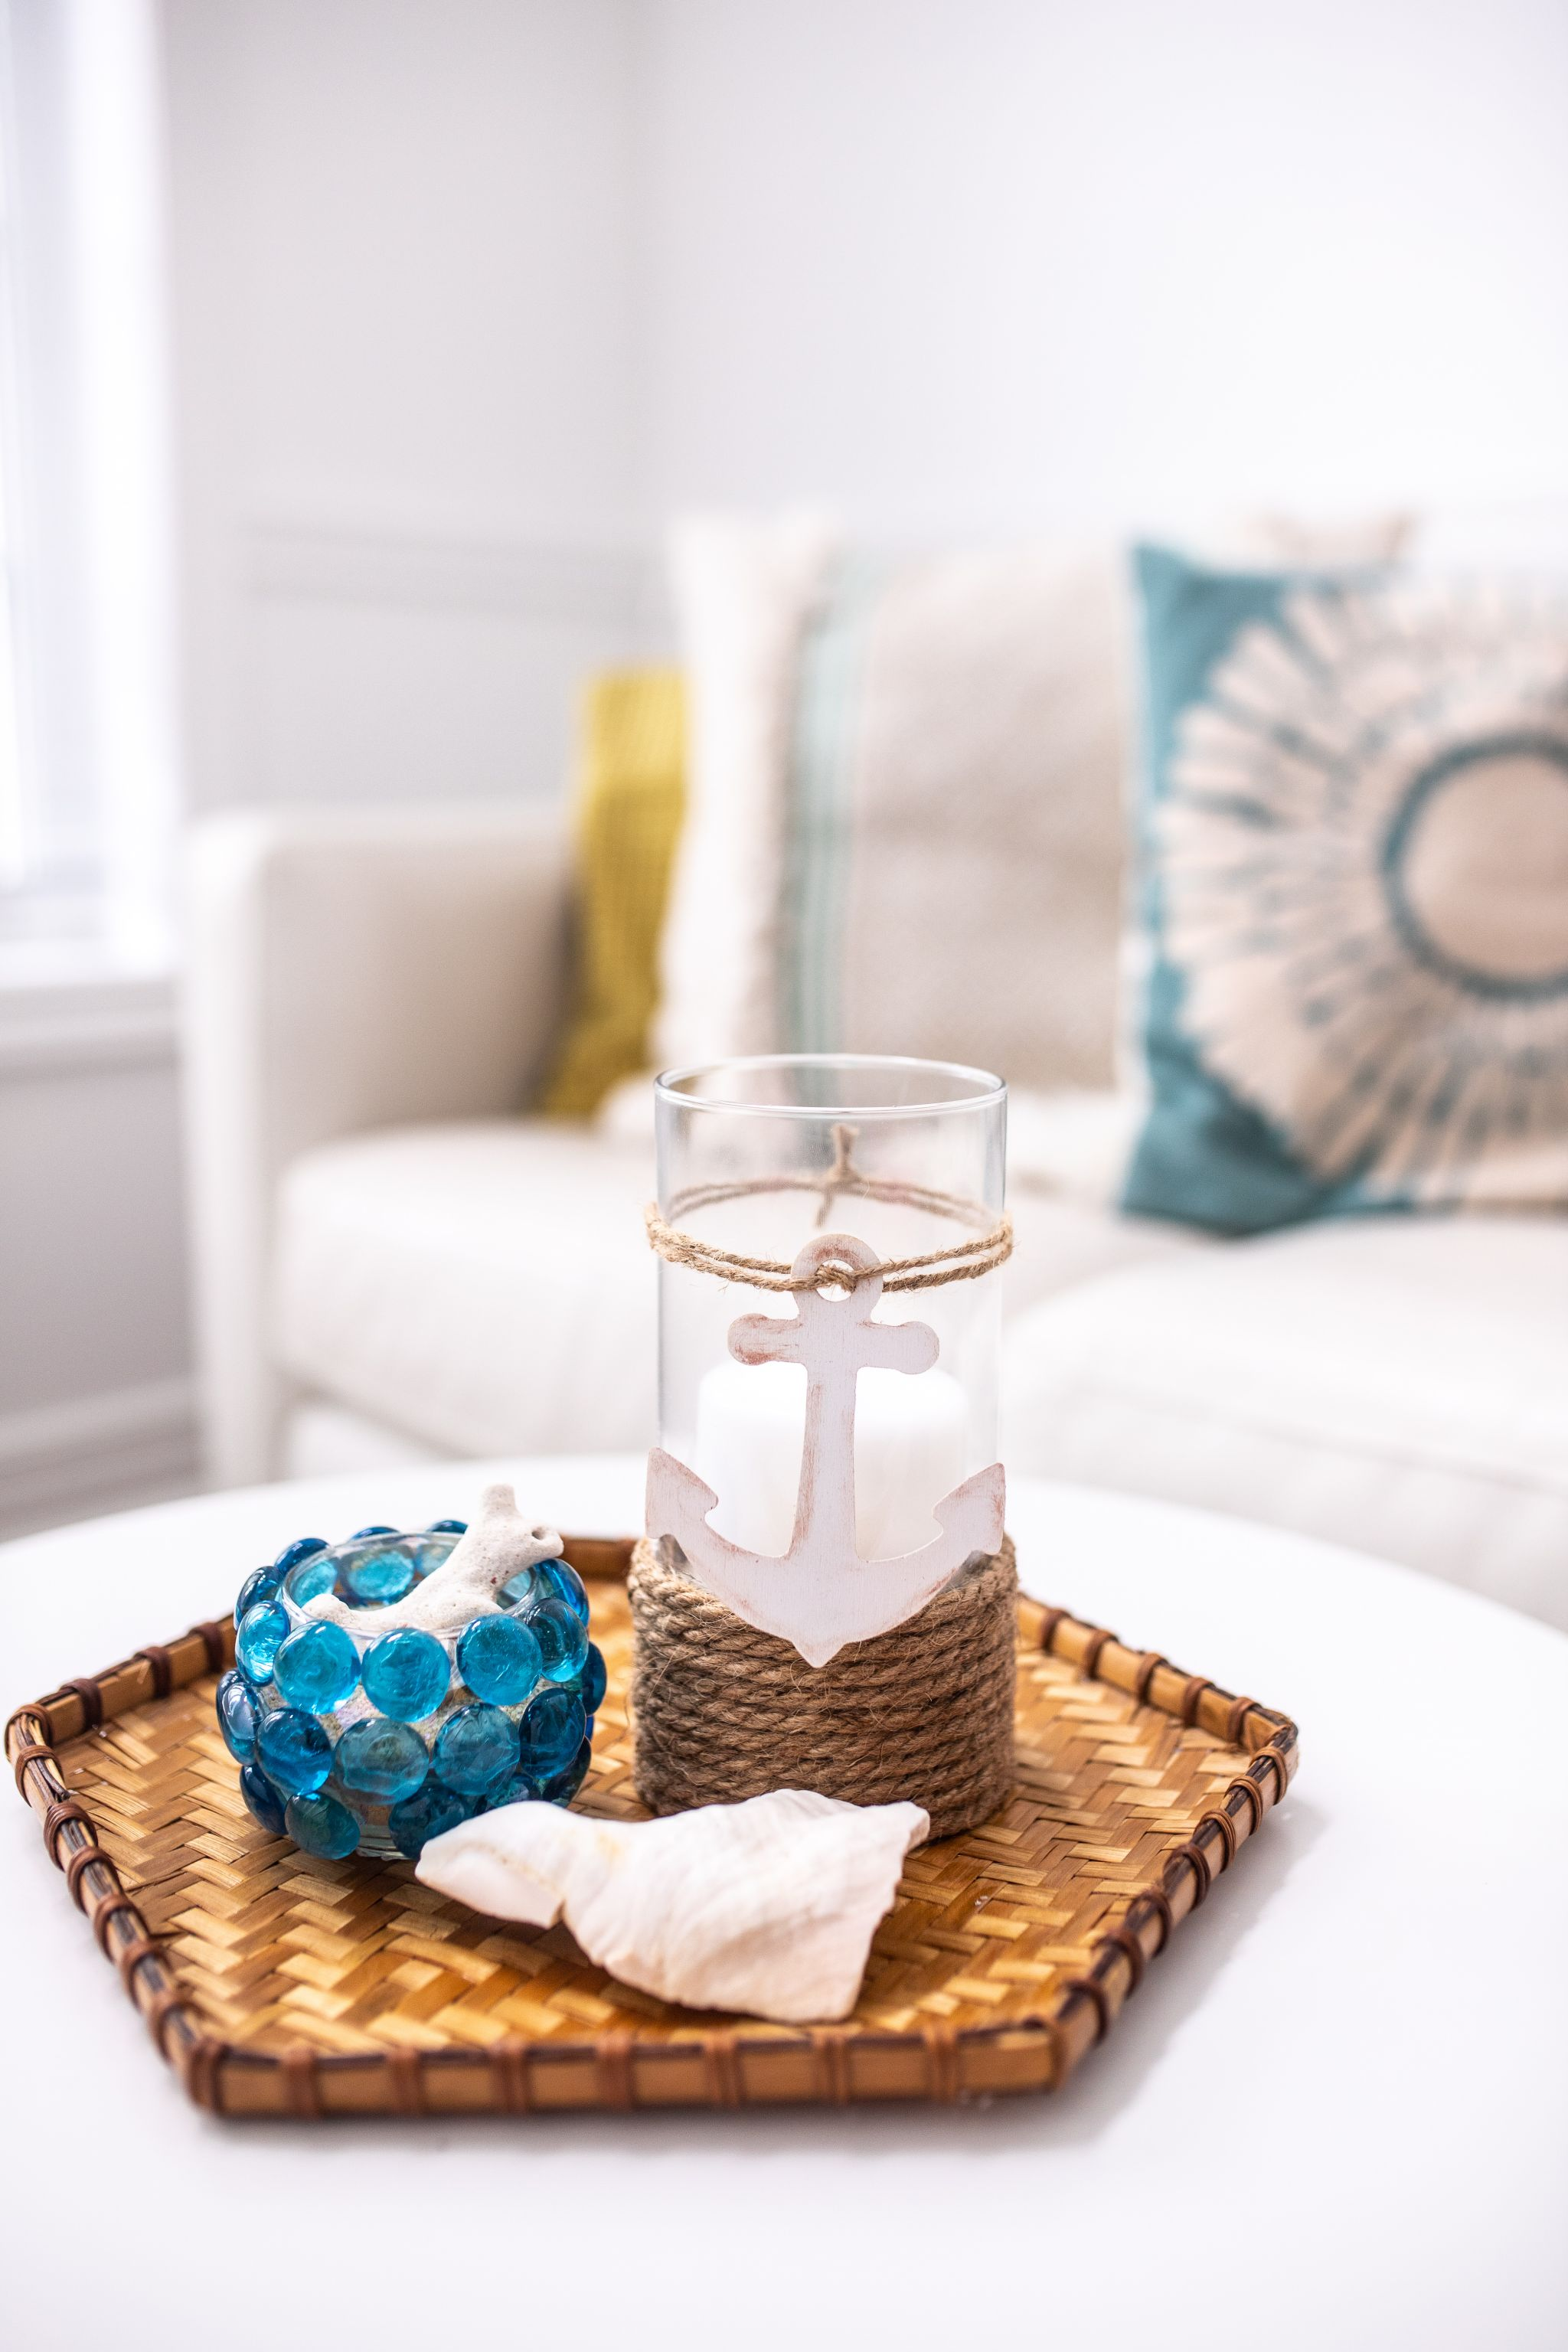 DIY Coastal Decor Candle Holder with shell